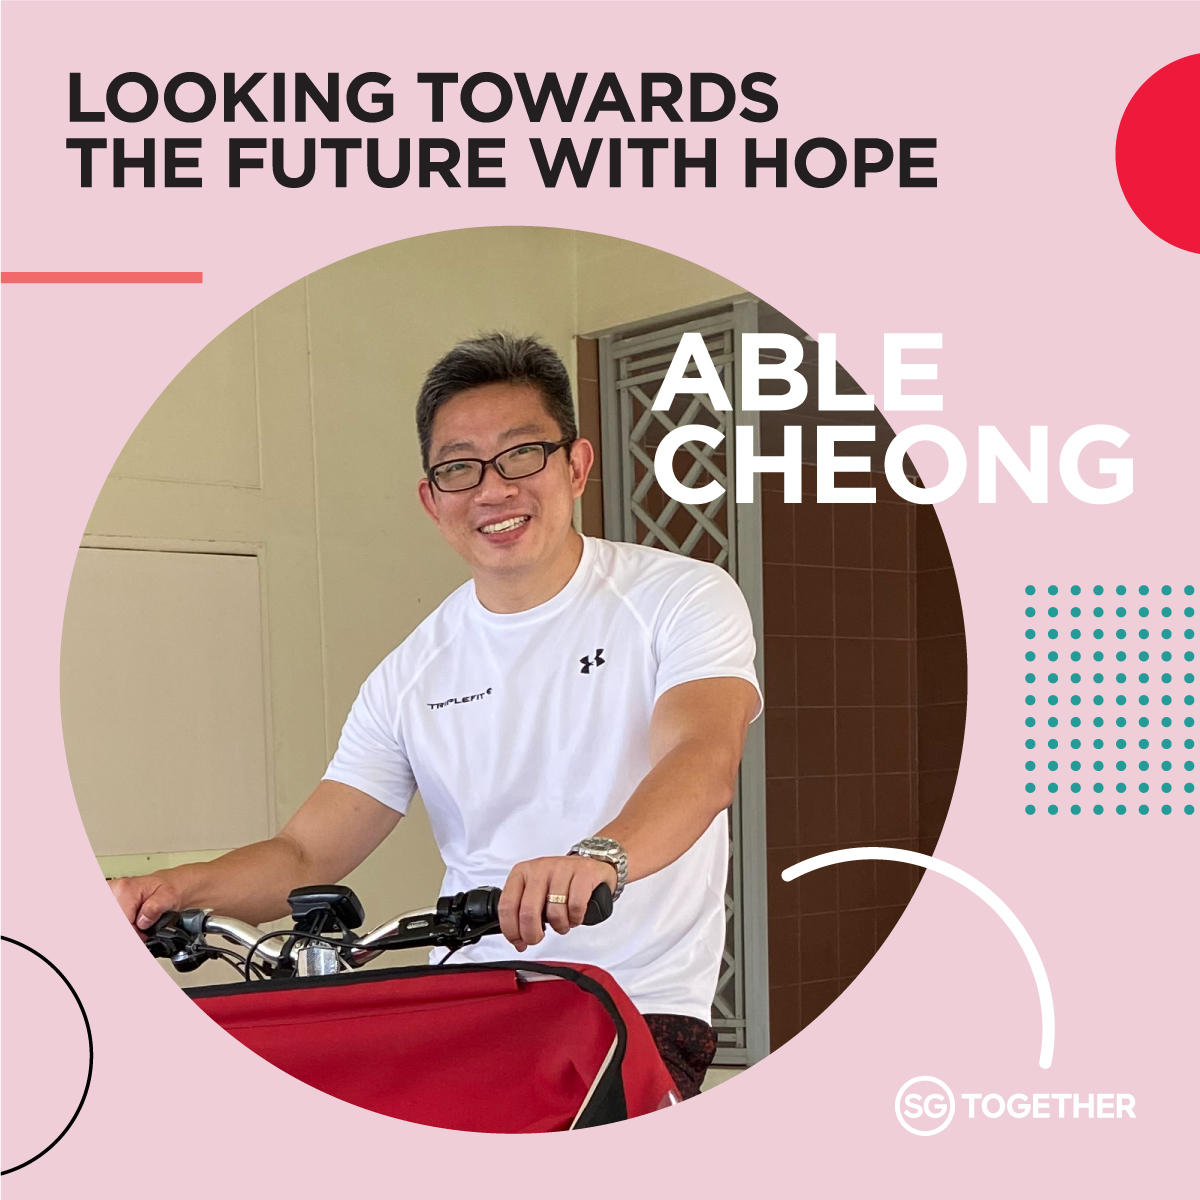 Able Cheong